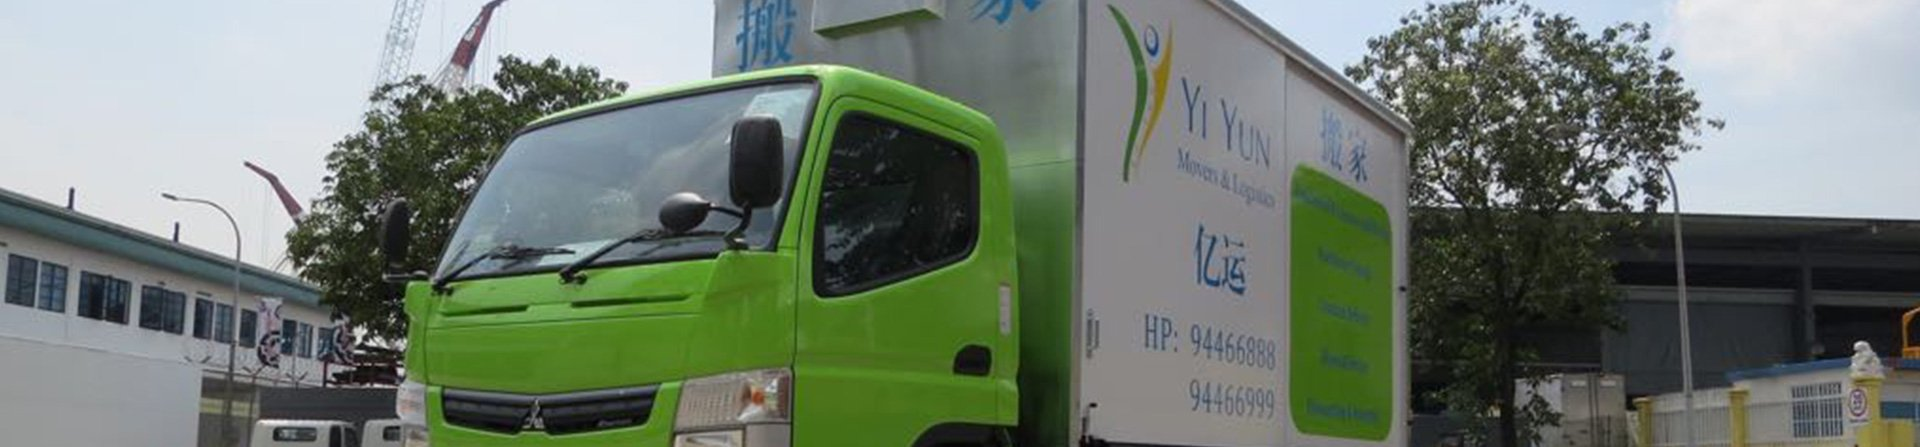 Moving & Storage Space Services in Singapore - Home Banner 2